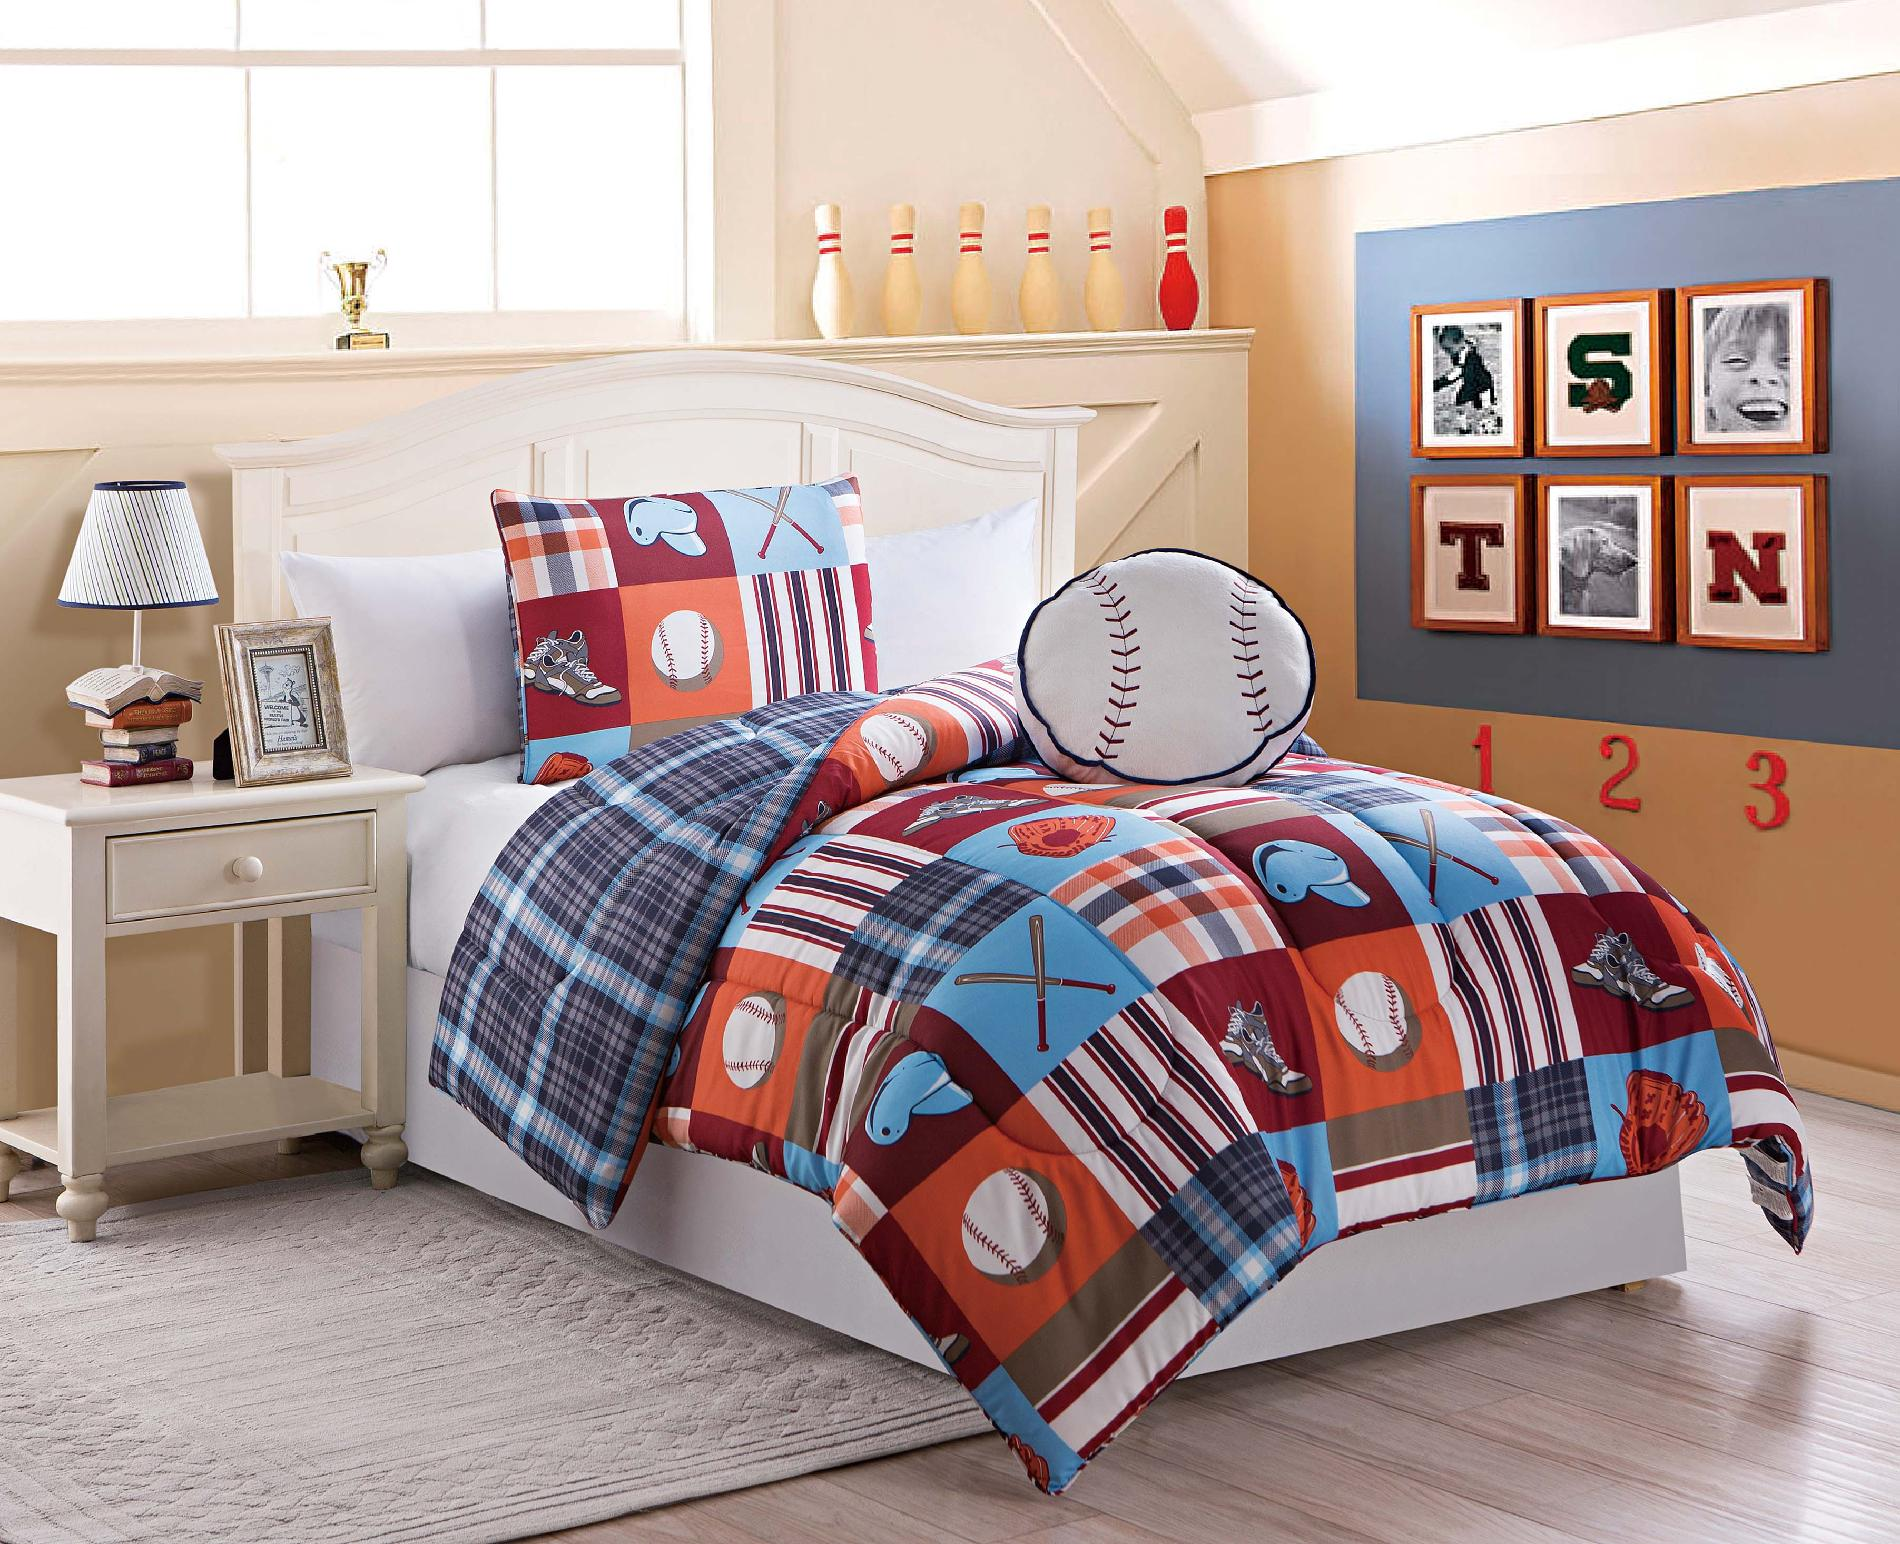 Boys Twin Size 3 Pc Reversible Baseball Comforter Set With Sham Pillow 416